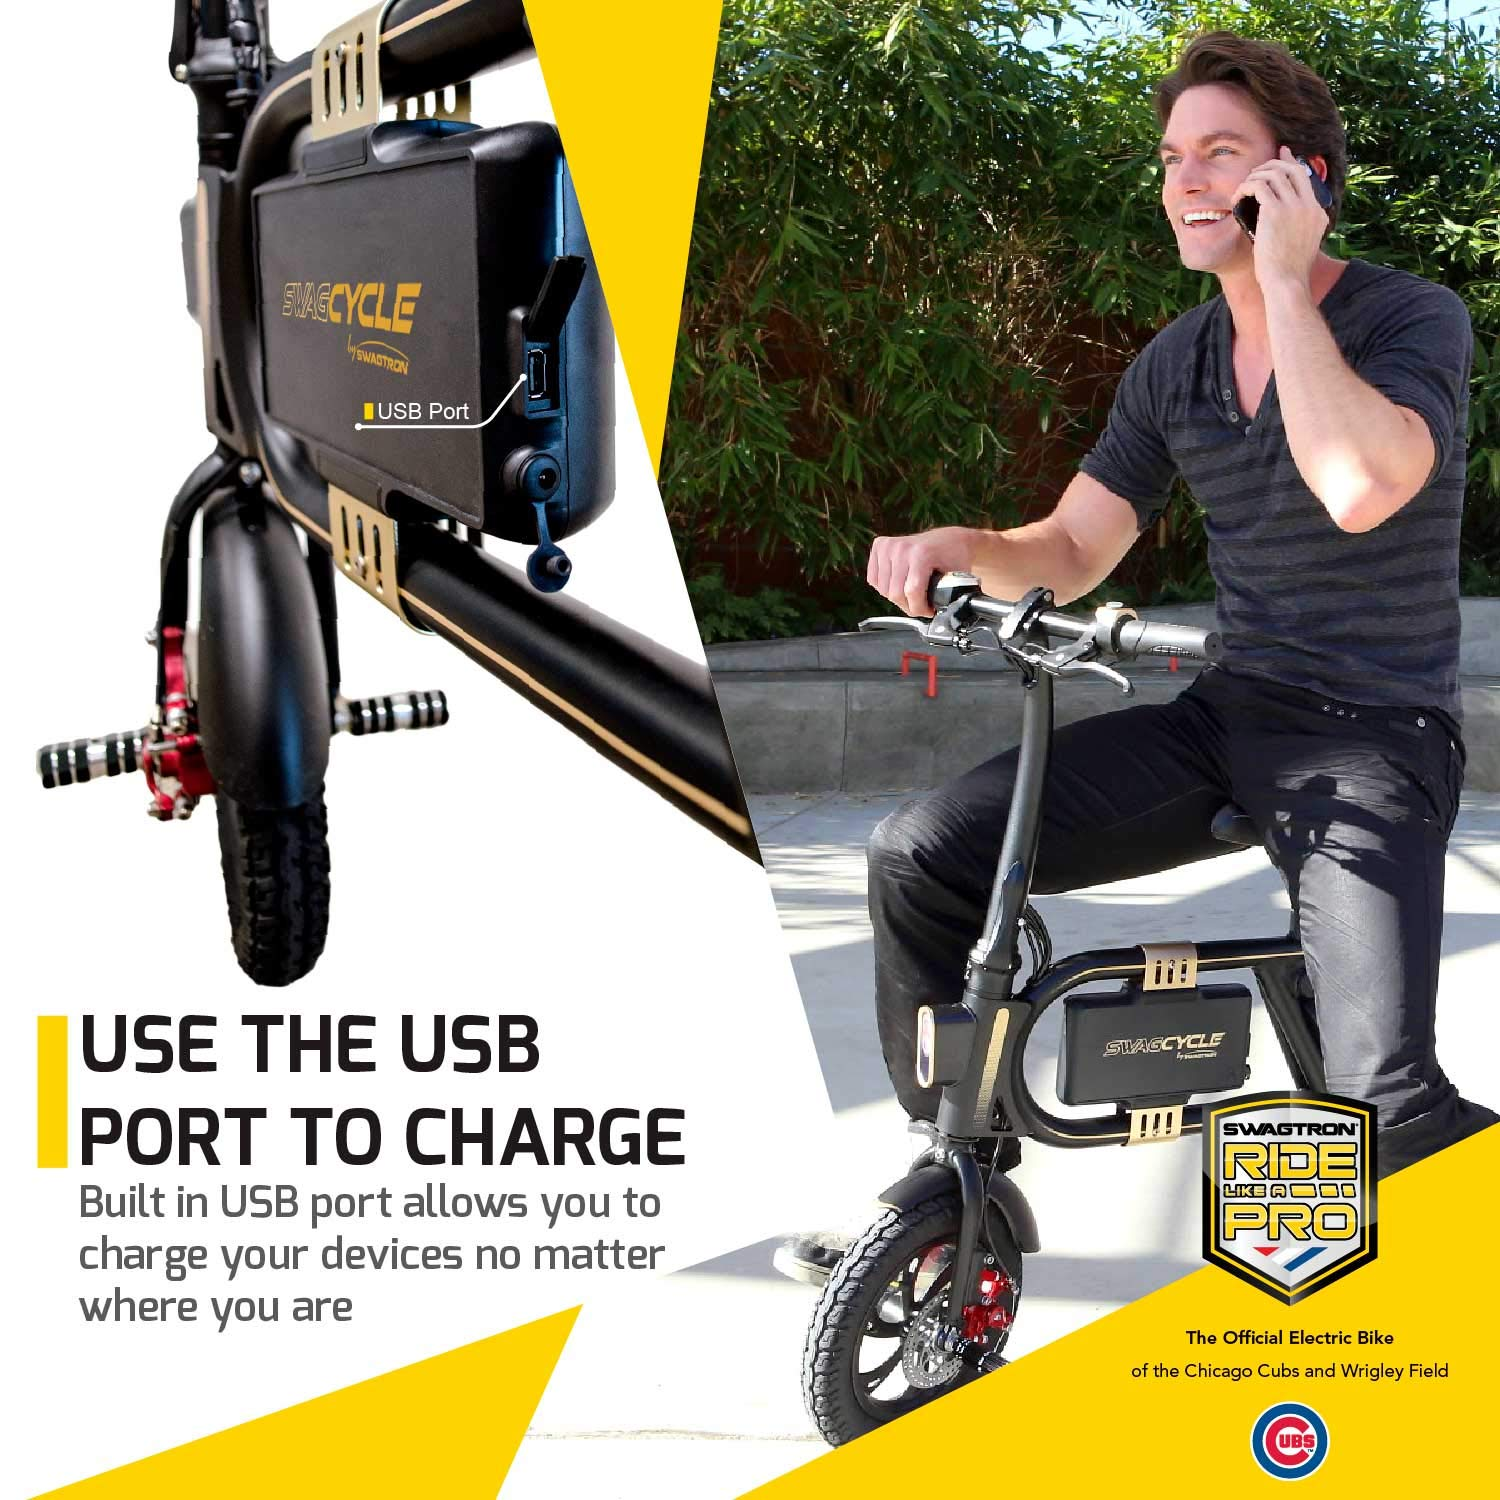 a4dab1ca323 Amazon.com   Swagtron SwagCycle Classic E-Bike - Folding Electric Bicycle  with 10 Mile Range